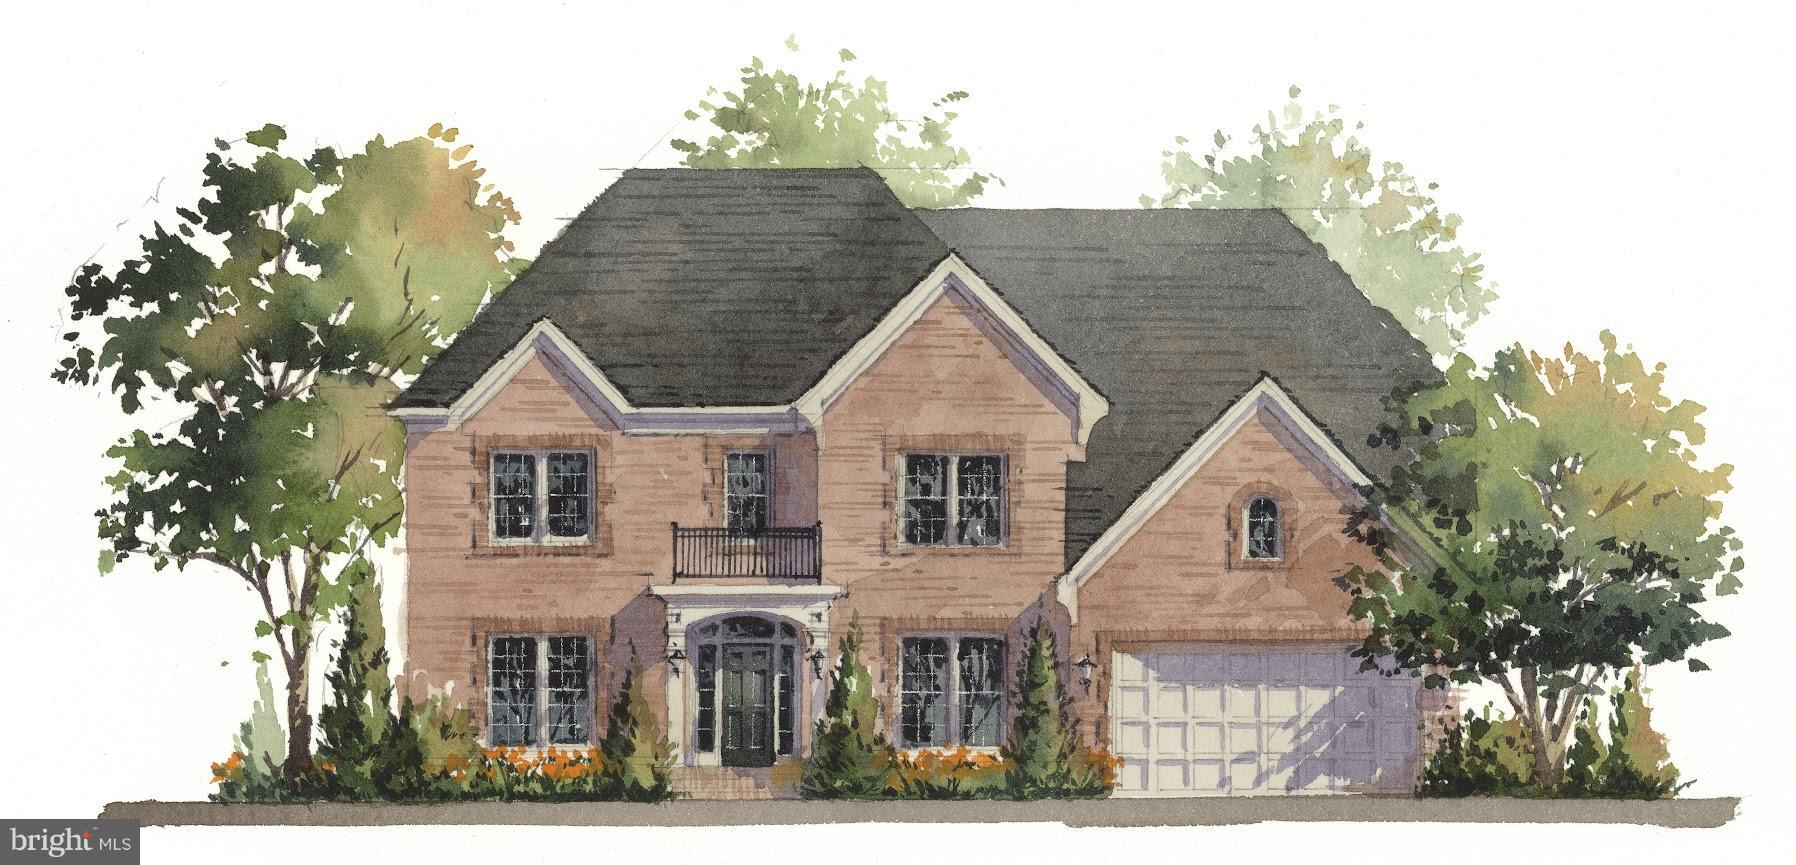 Plans to Build a Beautiful Evermay plan with Buyers Selections/options, 6-7 months build time, see sales manager for questions.Grant 703-929-3319